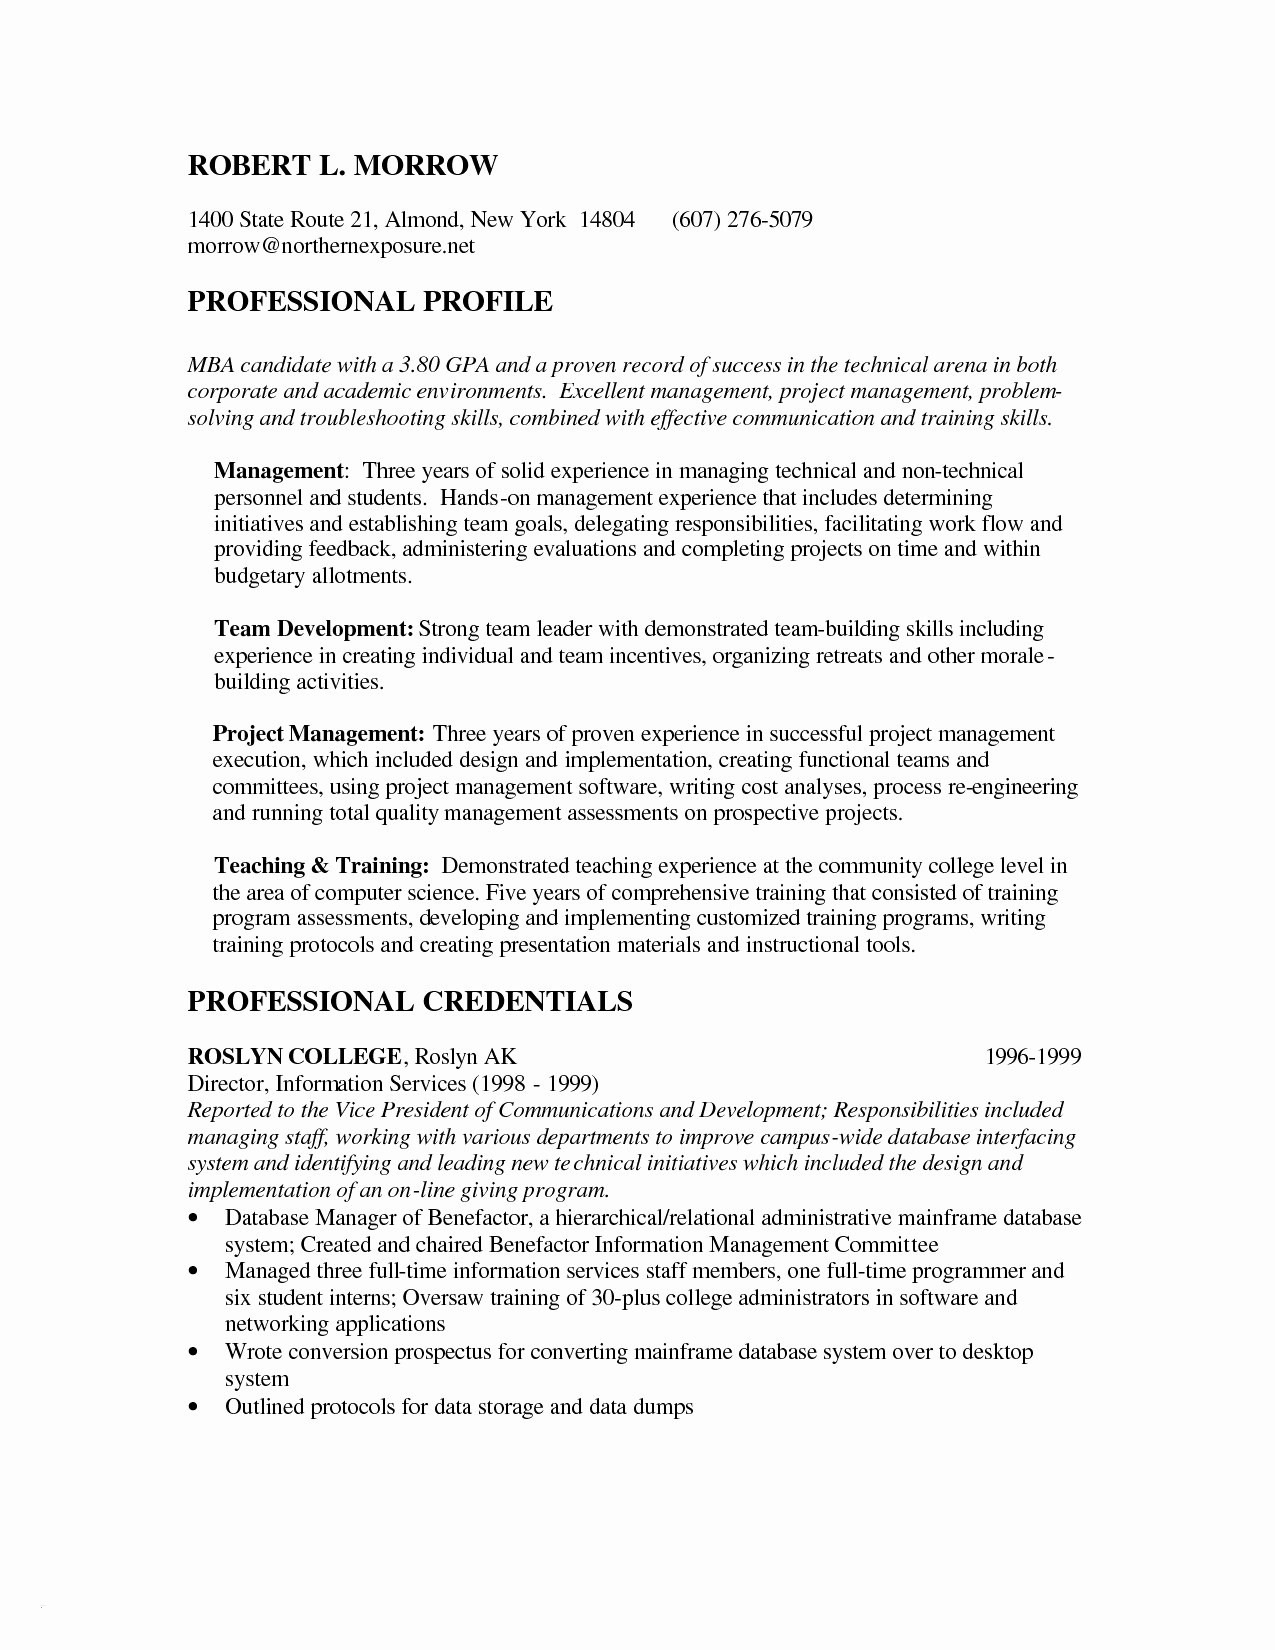 Mba Application Resume Template - Mba Application Resume Template Best Mba Resume Template